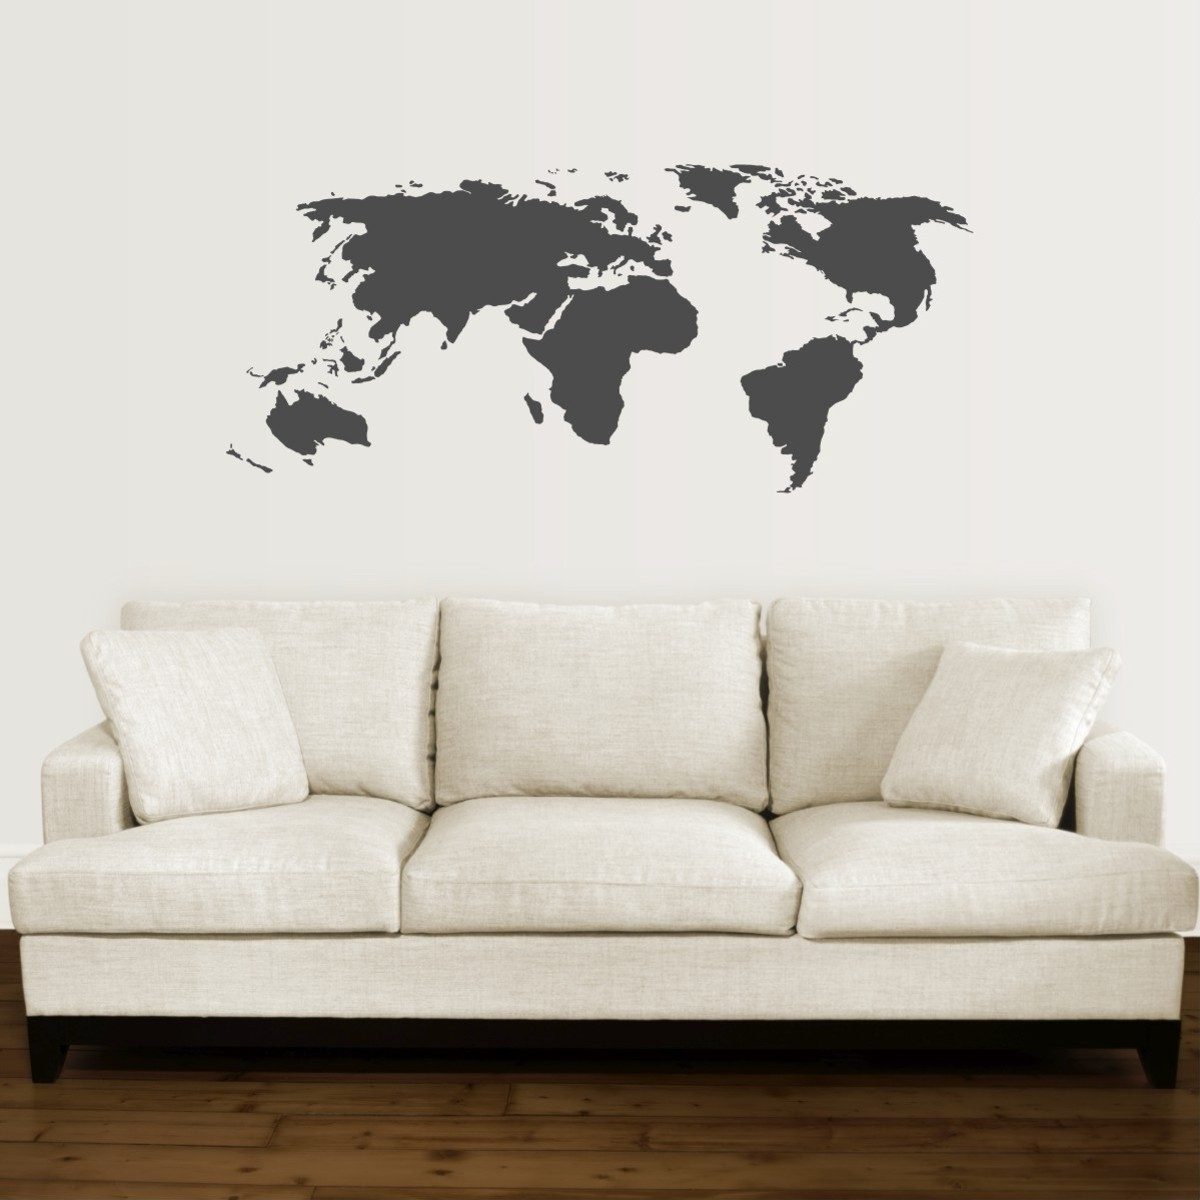 Fashionable 17 Cool Ideas For World Map Wall Art – Live Diy Ideas Pertaining To Wall Art World Map (View 5 of 15)